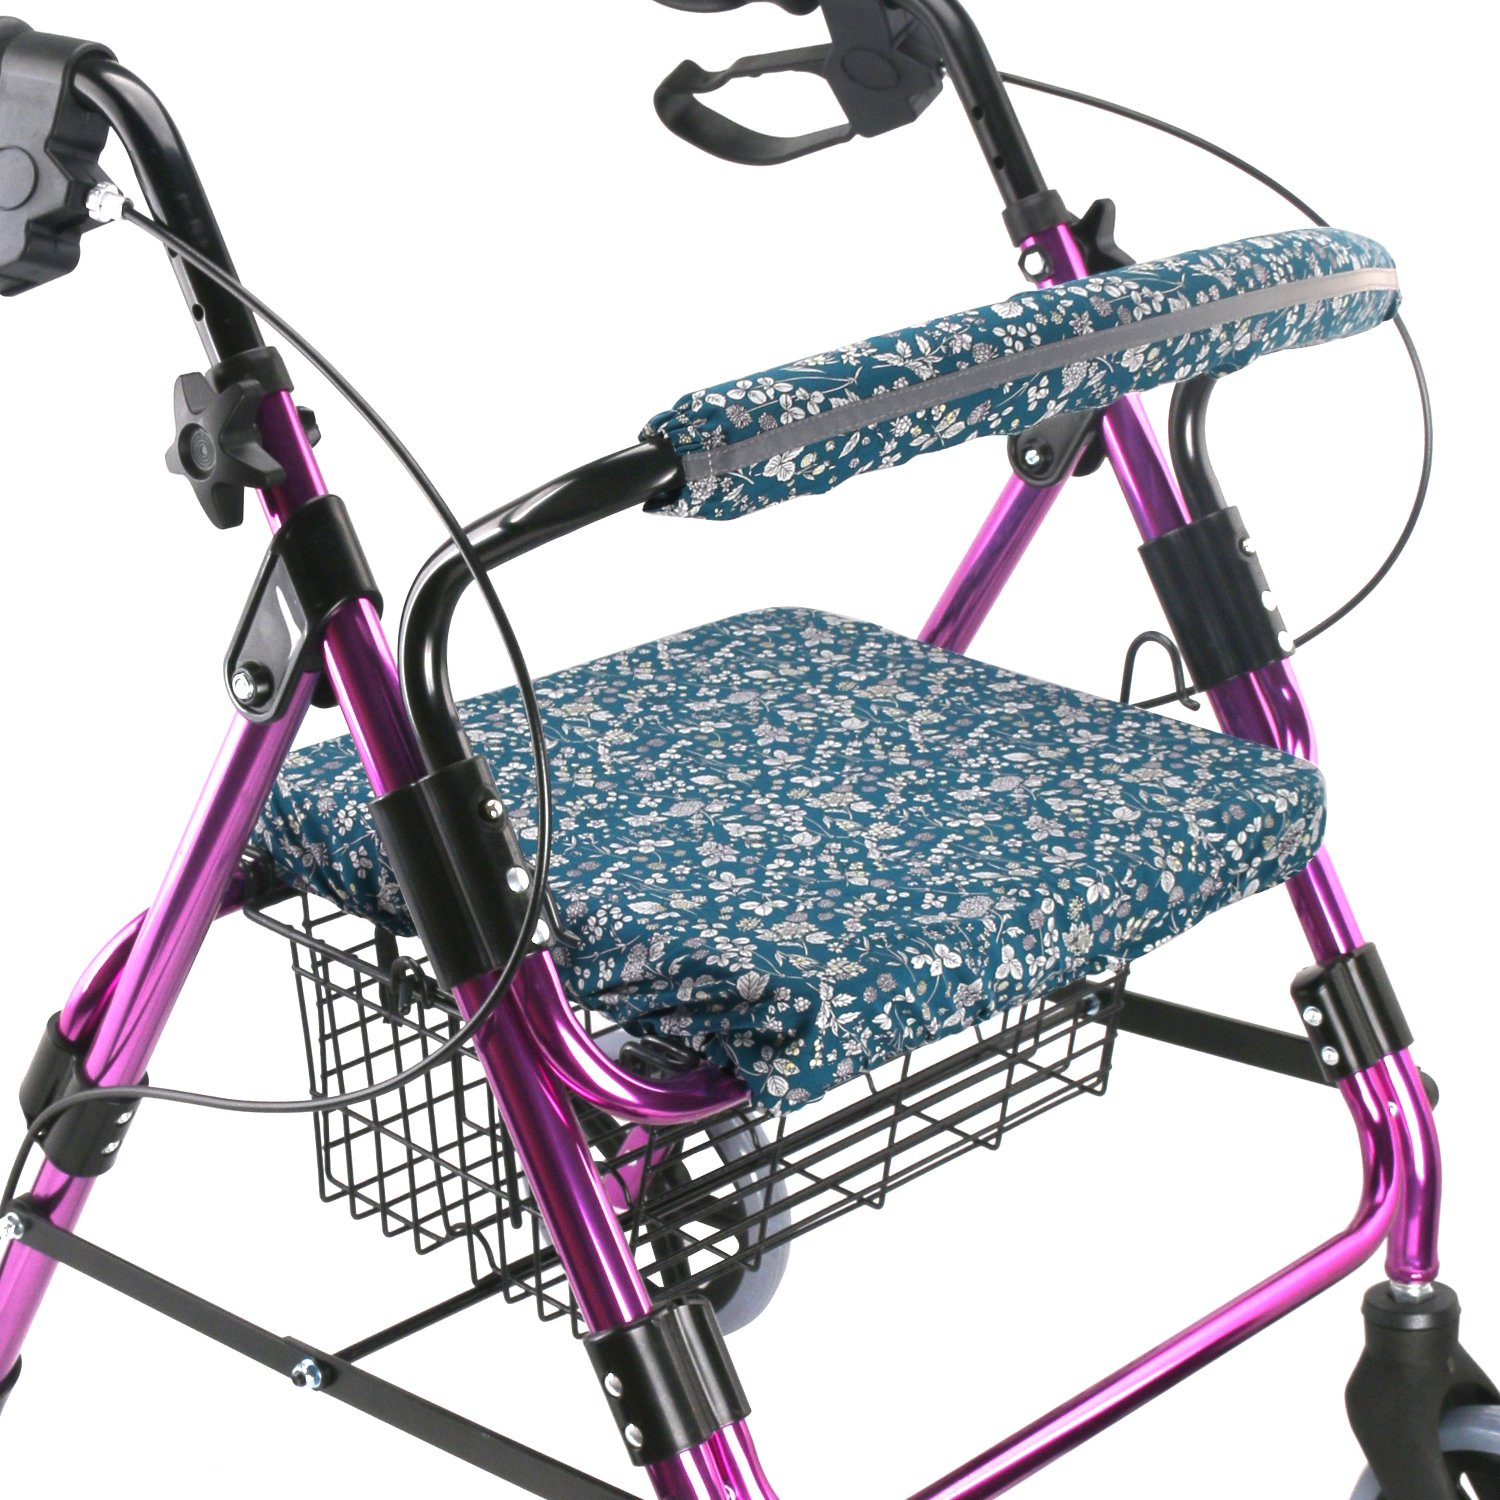 Walker Seat Cover Rollator Walker Seat and Backrest Covers Vibrant Walker Cover One Size Multiple Colors (CB1882) by TOMMHANES AMISGUOER